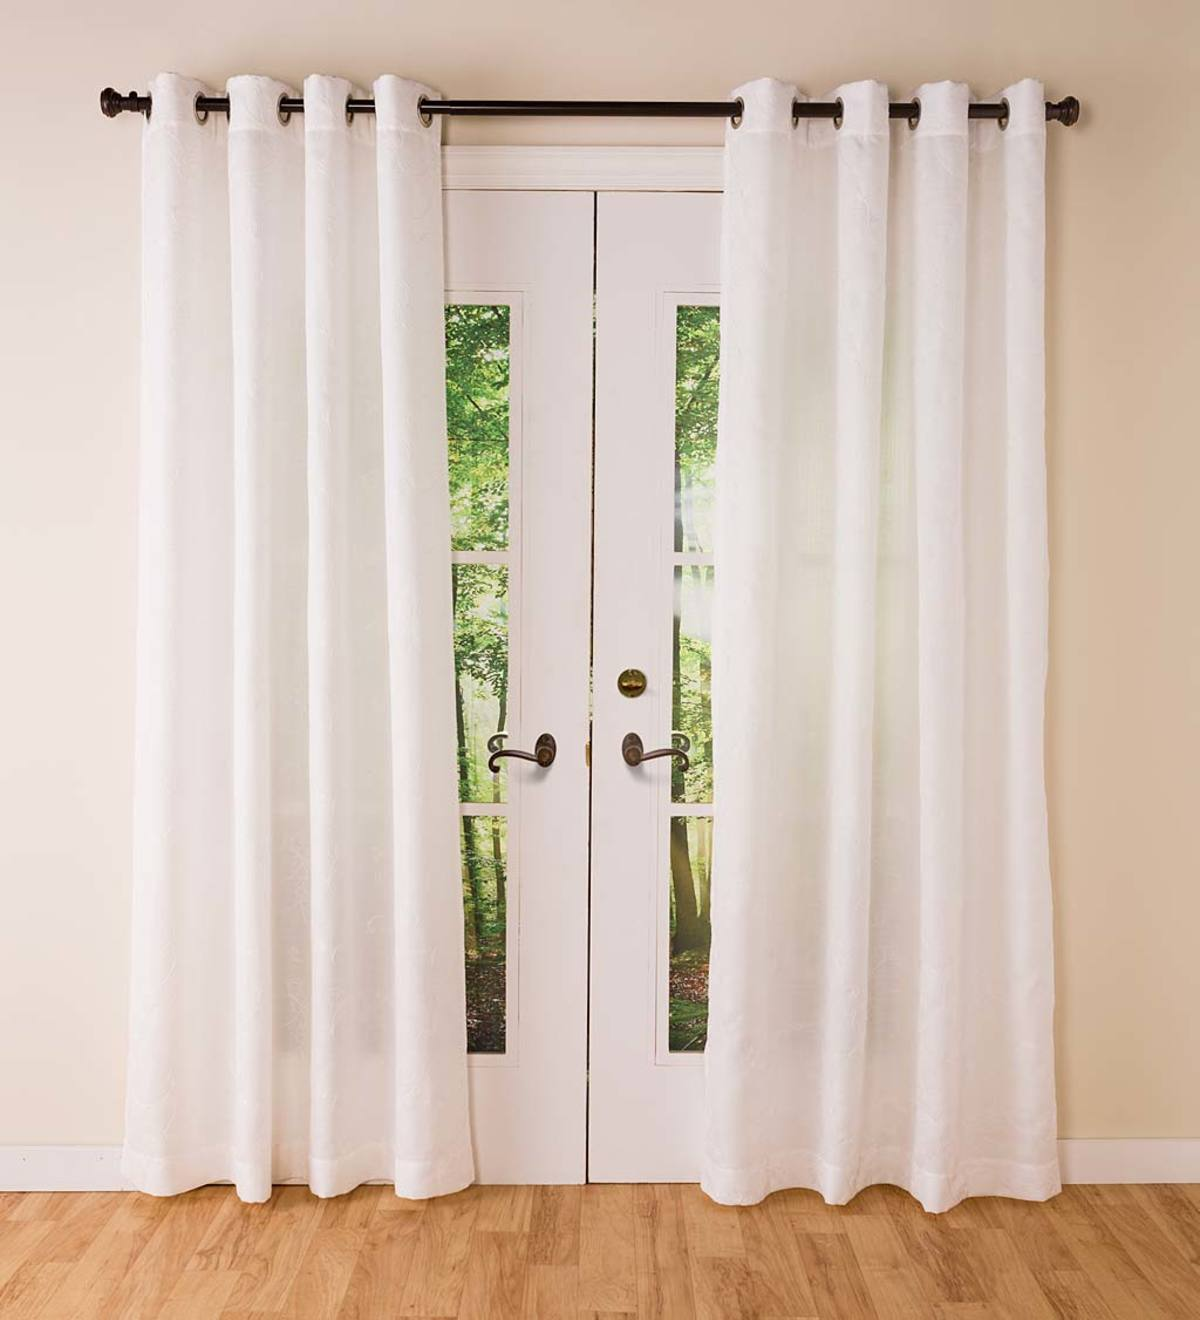 Easy Care Candlewick Grommet Top Curtain Panels